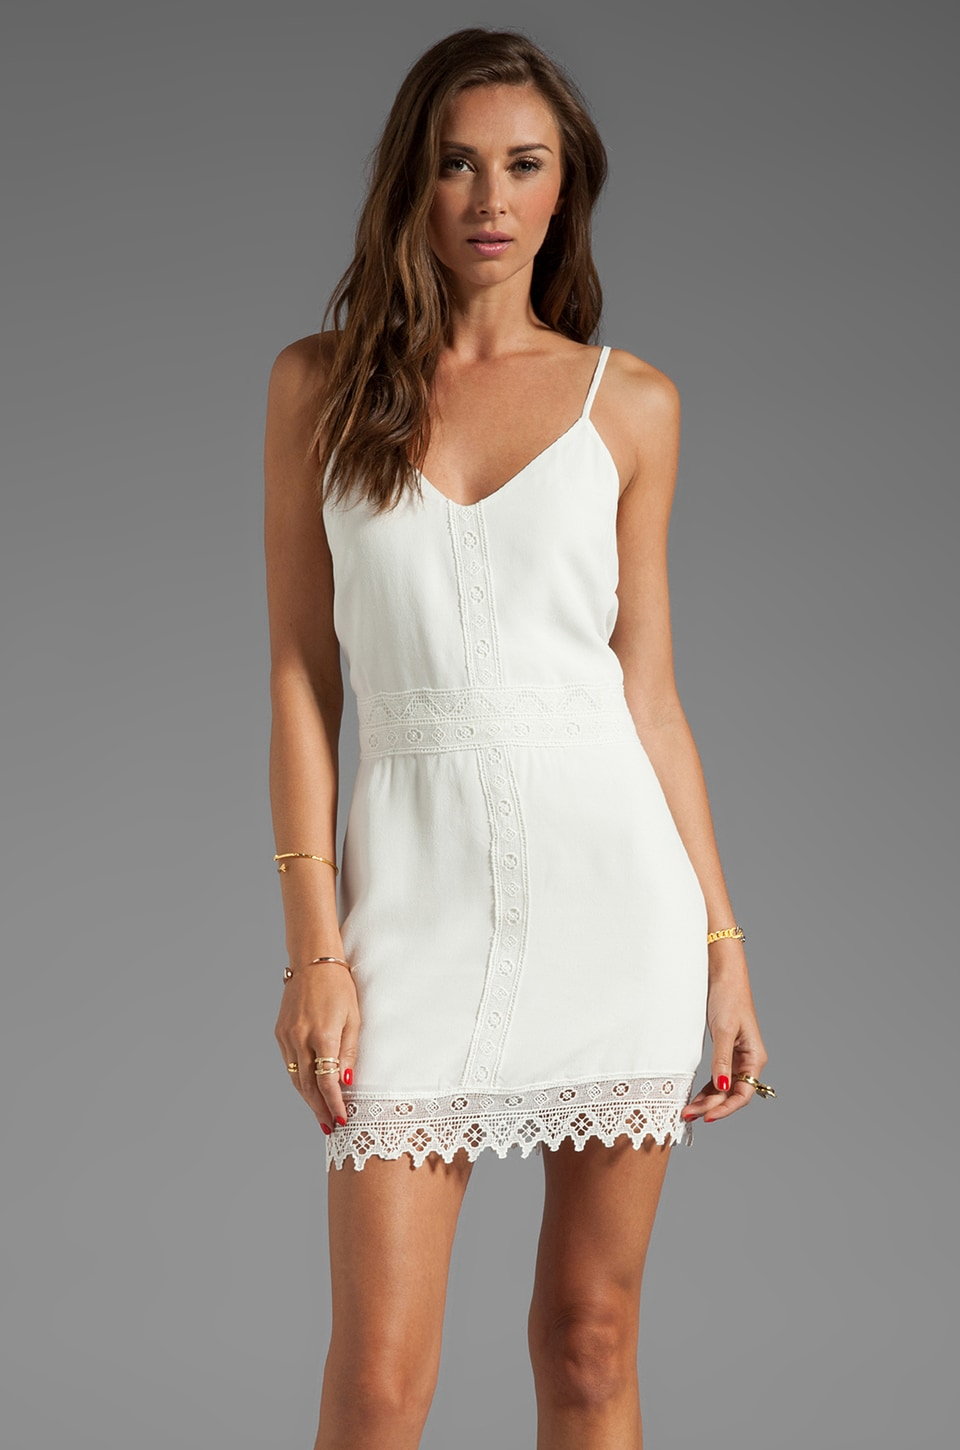 Dolce Vita Byzantine Edgy Lace Dress in White